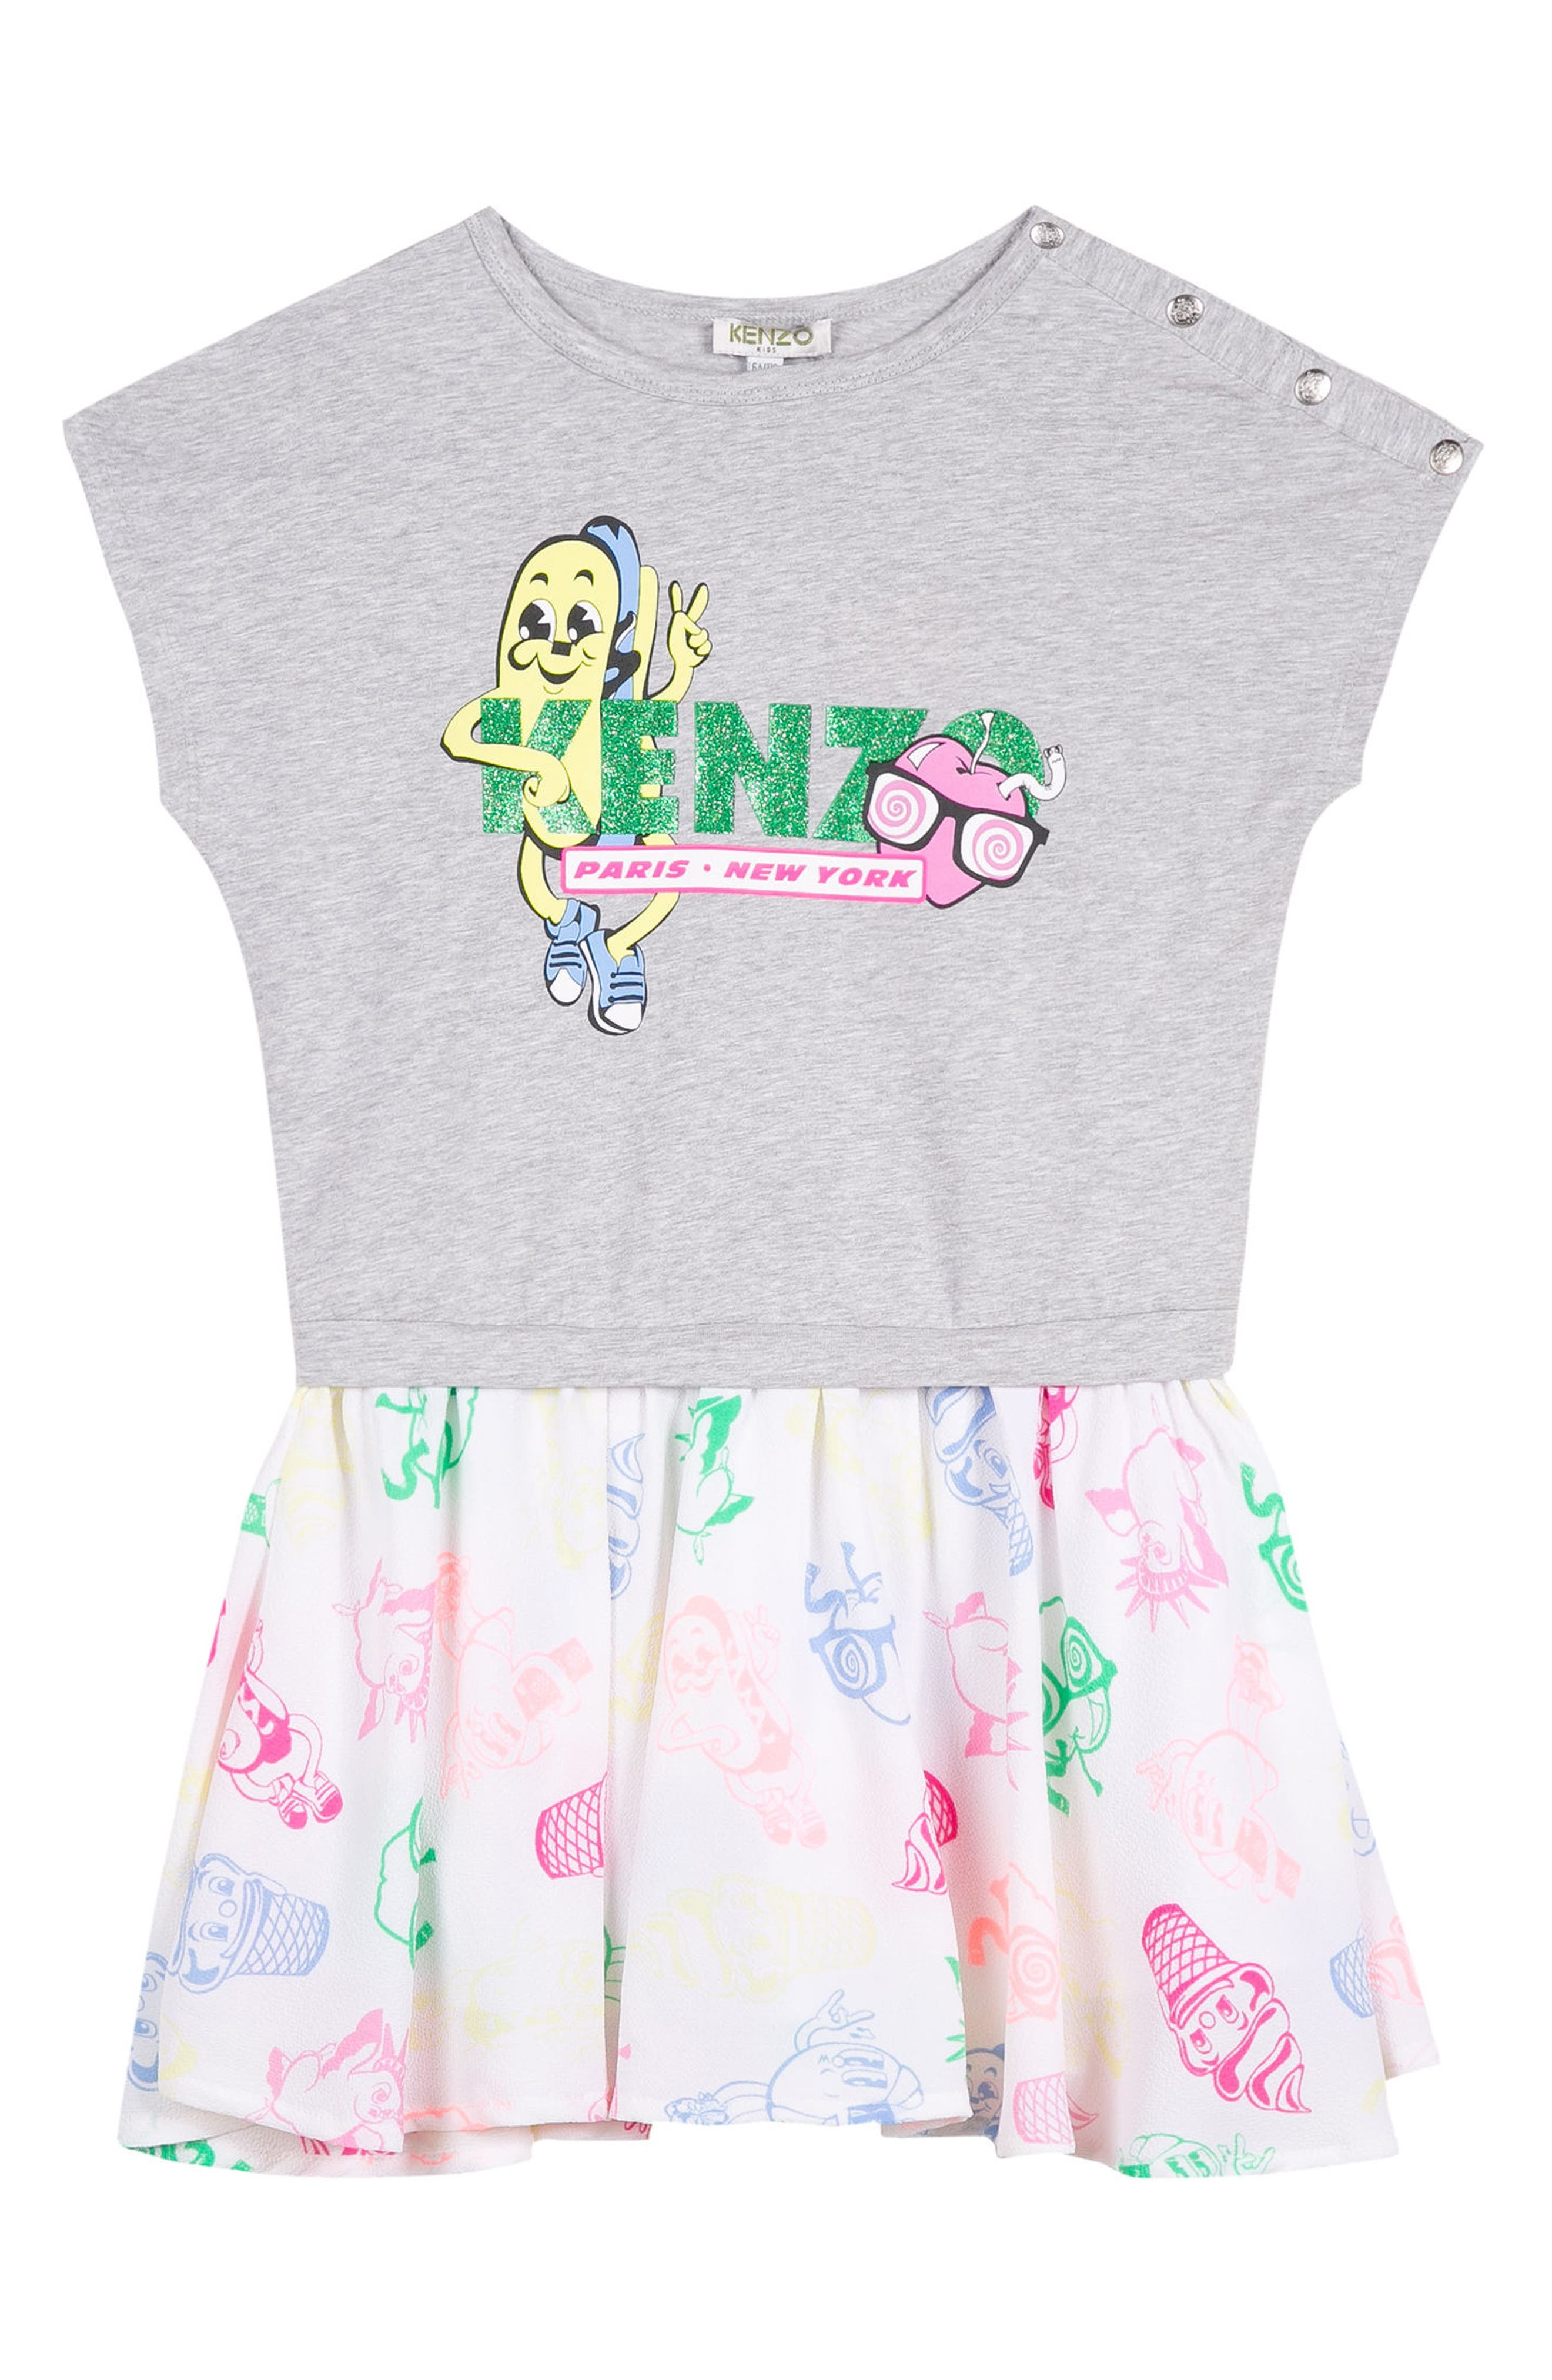 Designer Kids KENZO For Girls Sizes 7 16 Clothes Jackets Jeans